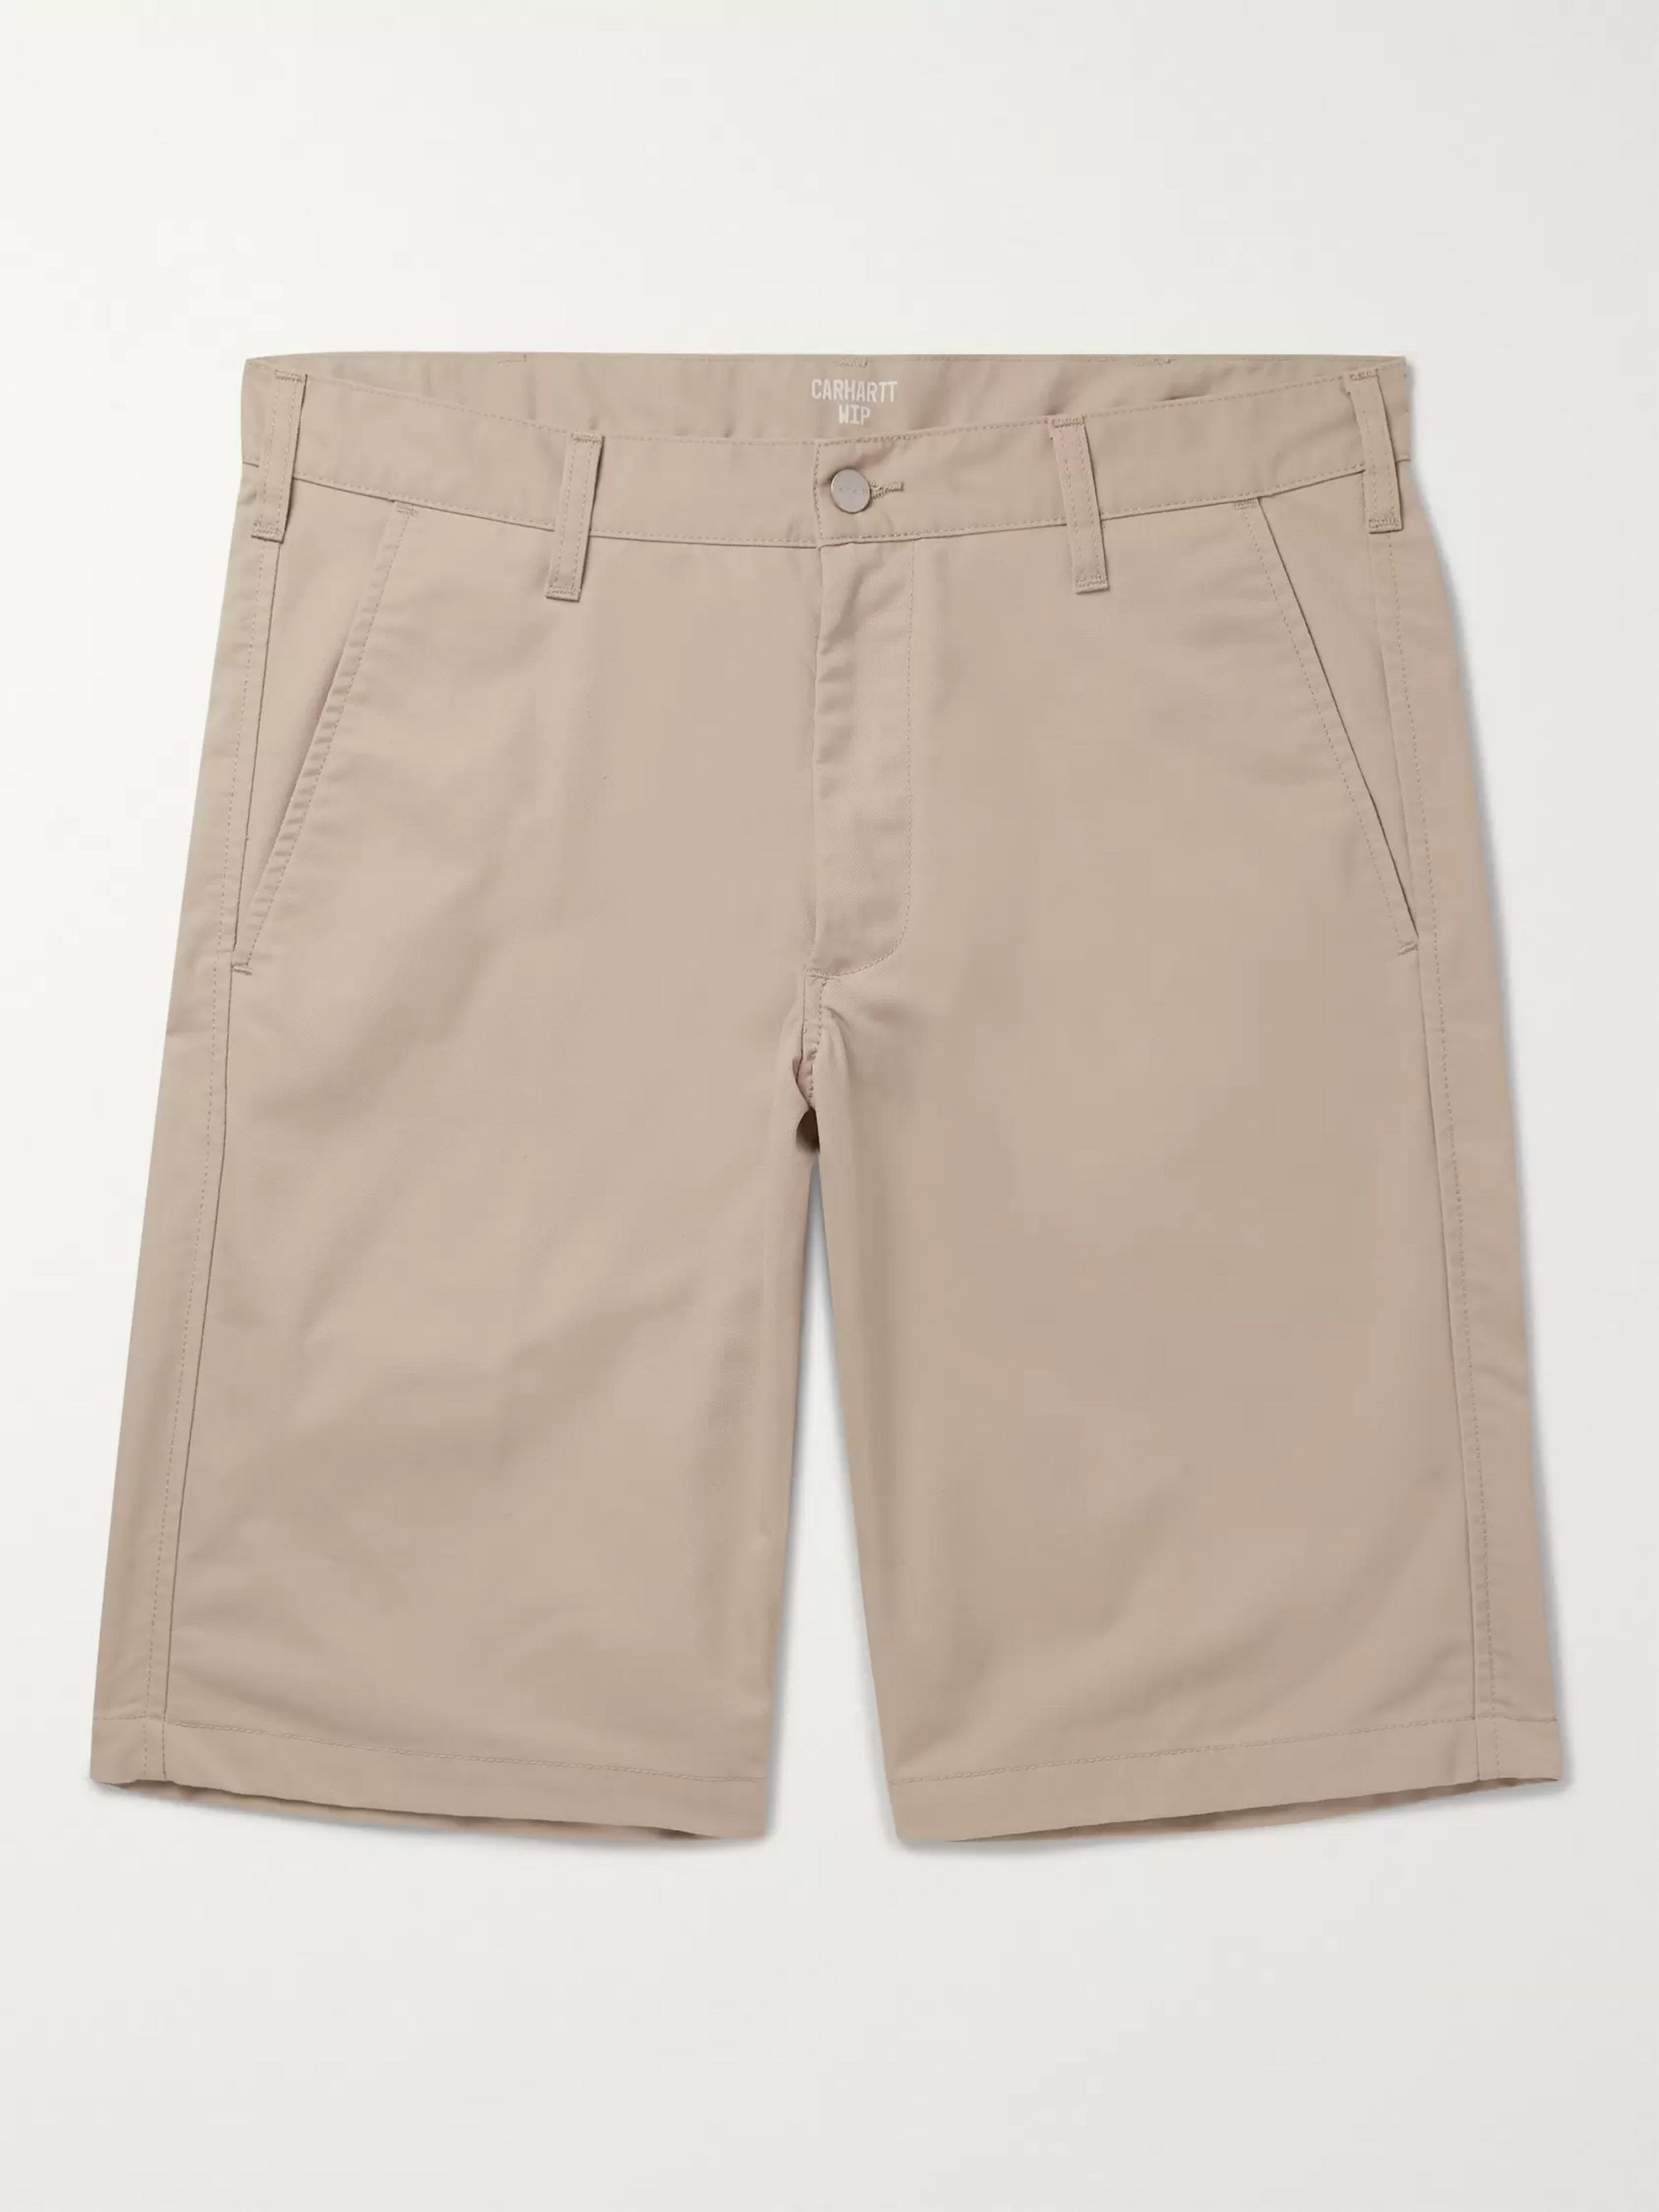 Carhartt WIP Presenter Twill Shorts